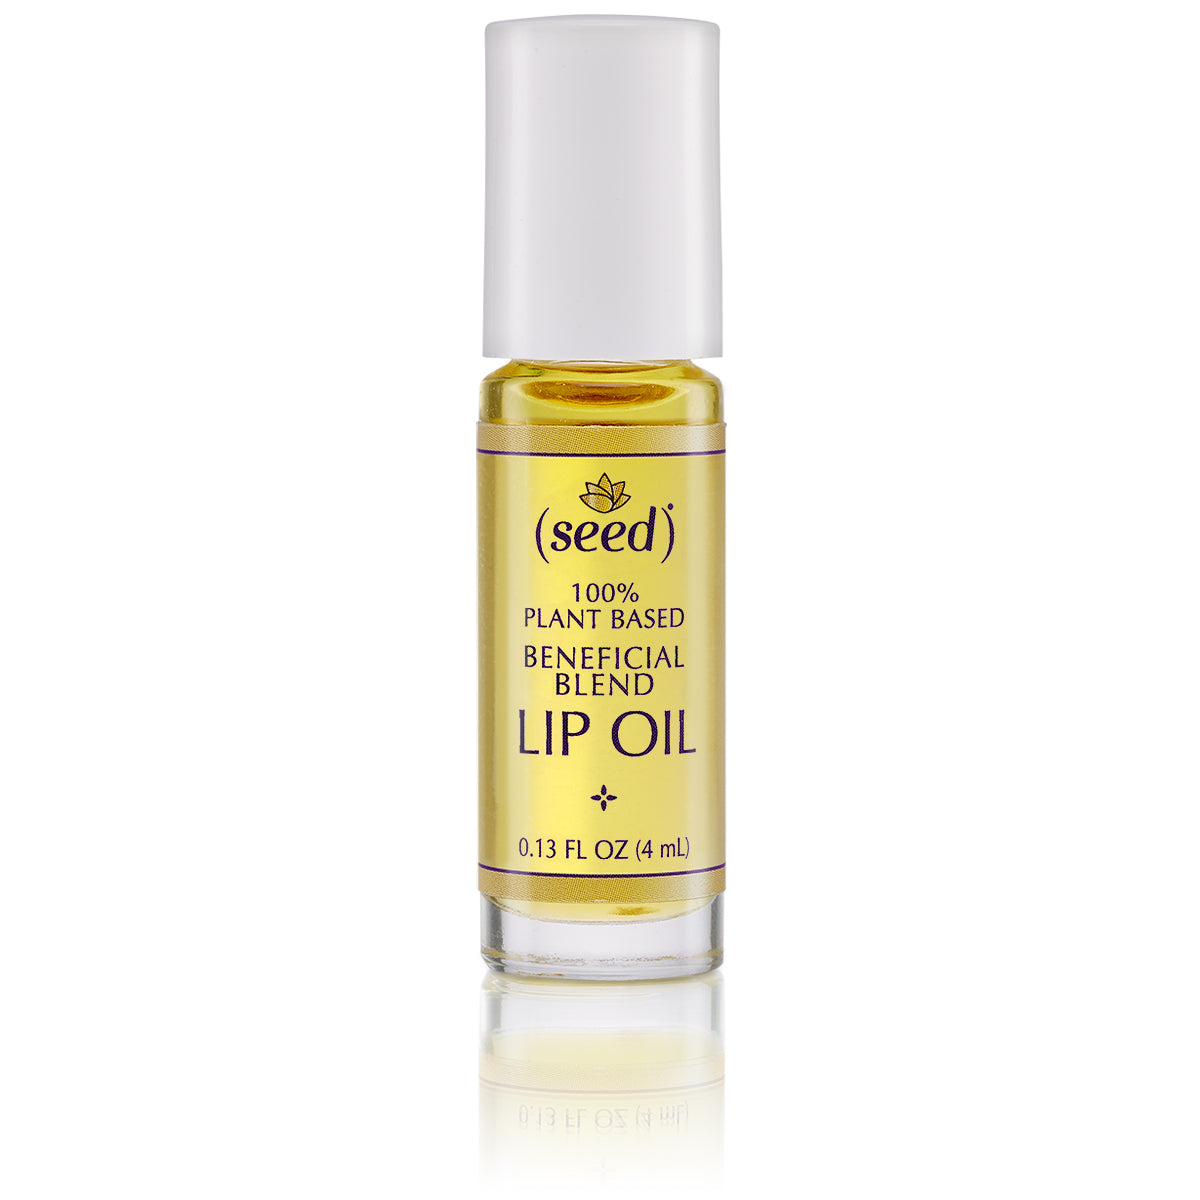 Seed Balancing Blend Lip Oil with palmarosa, lemon, and coriander essential oils